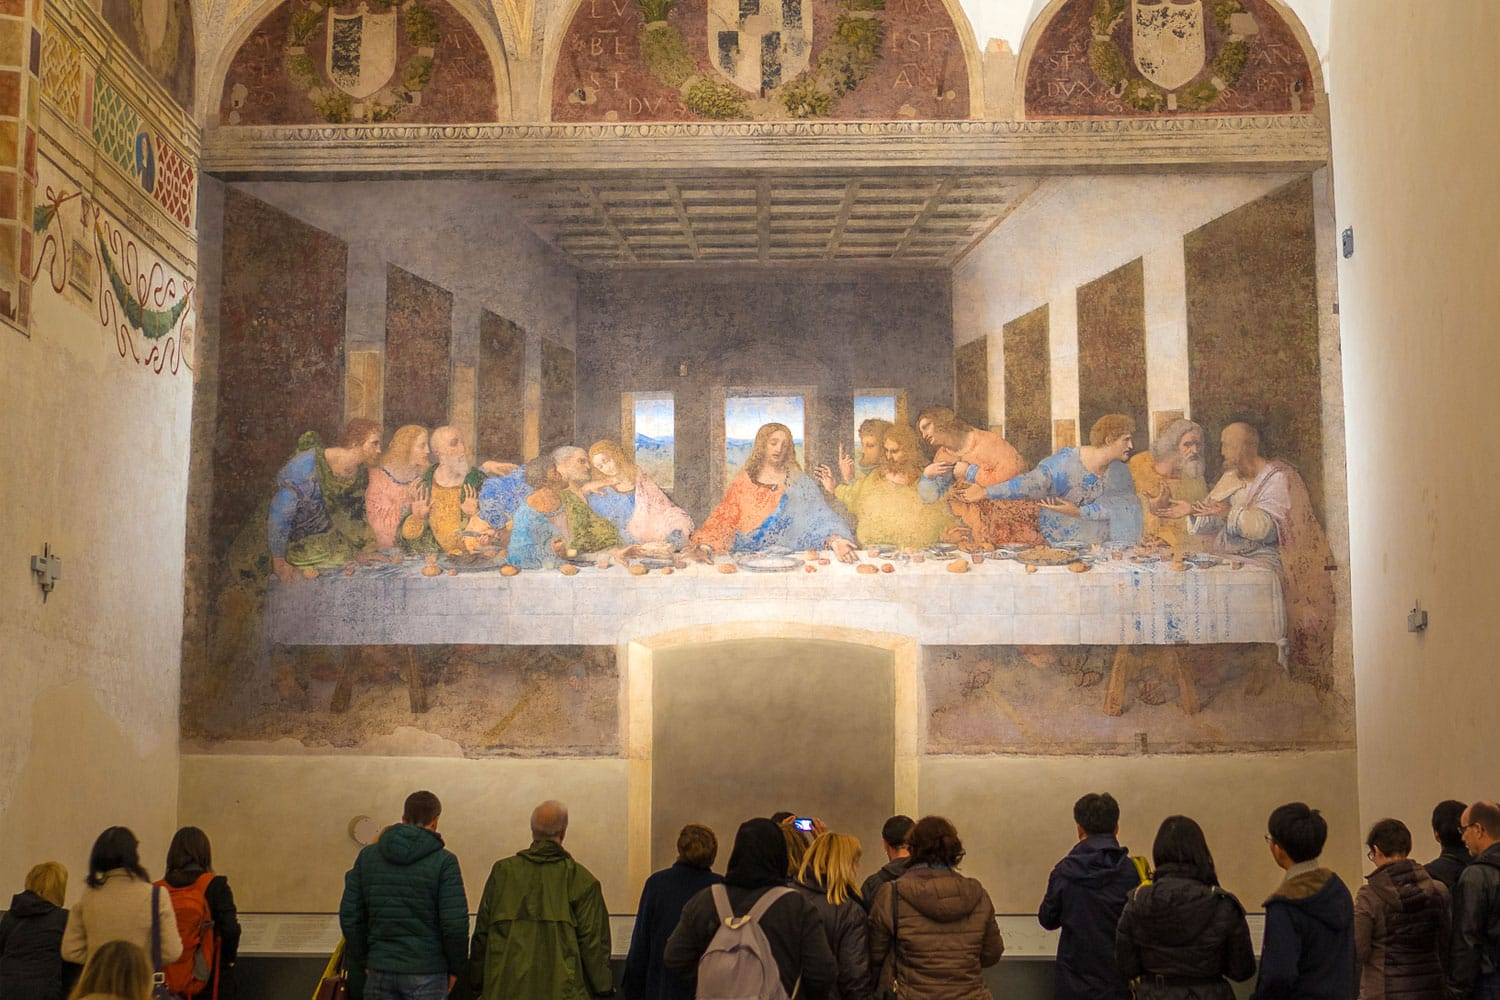 The Last Supper in the refectory of the Convent of Santa Maria delle Grazie in Milan, Italy